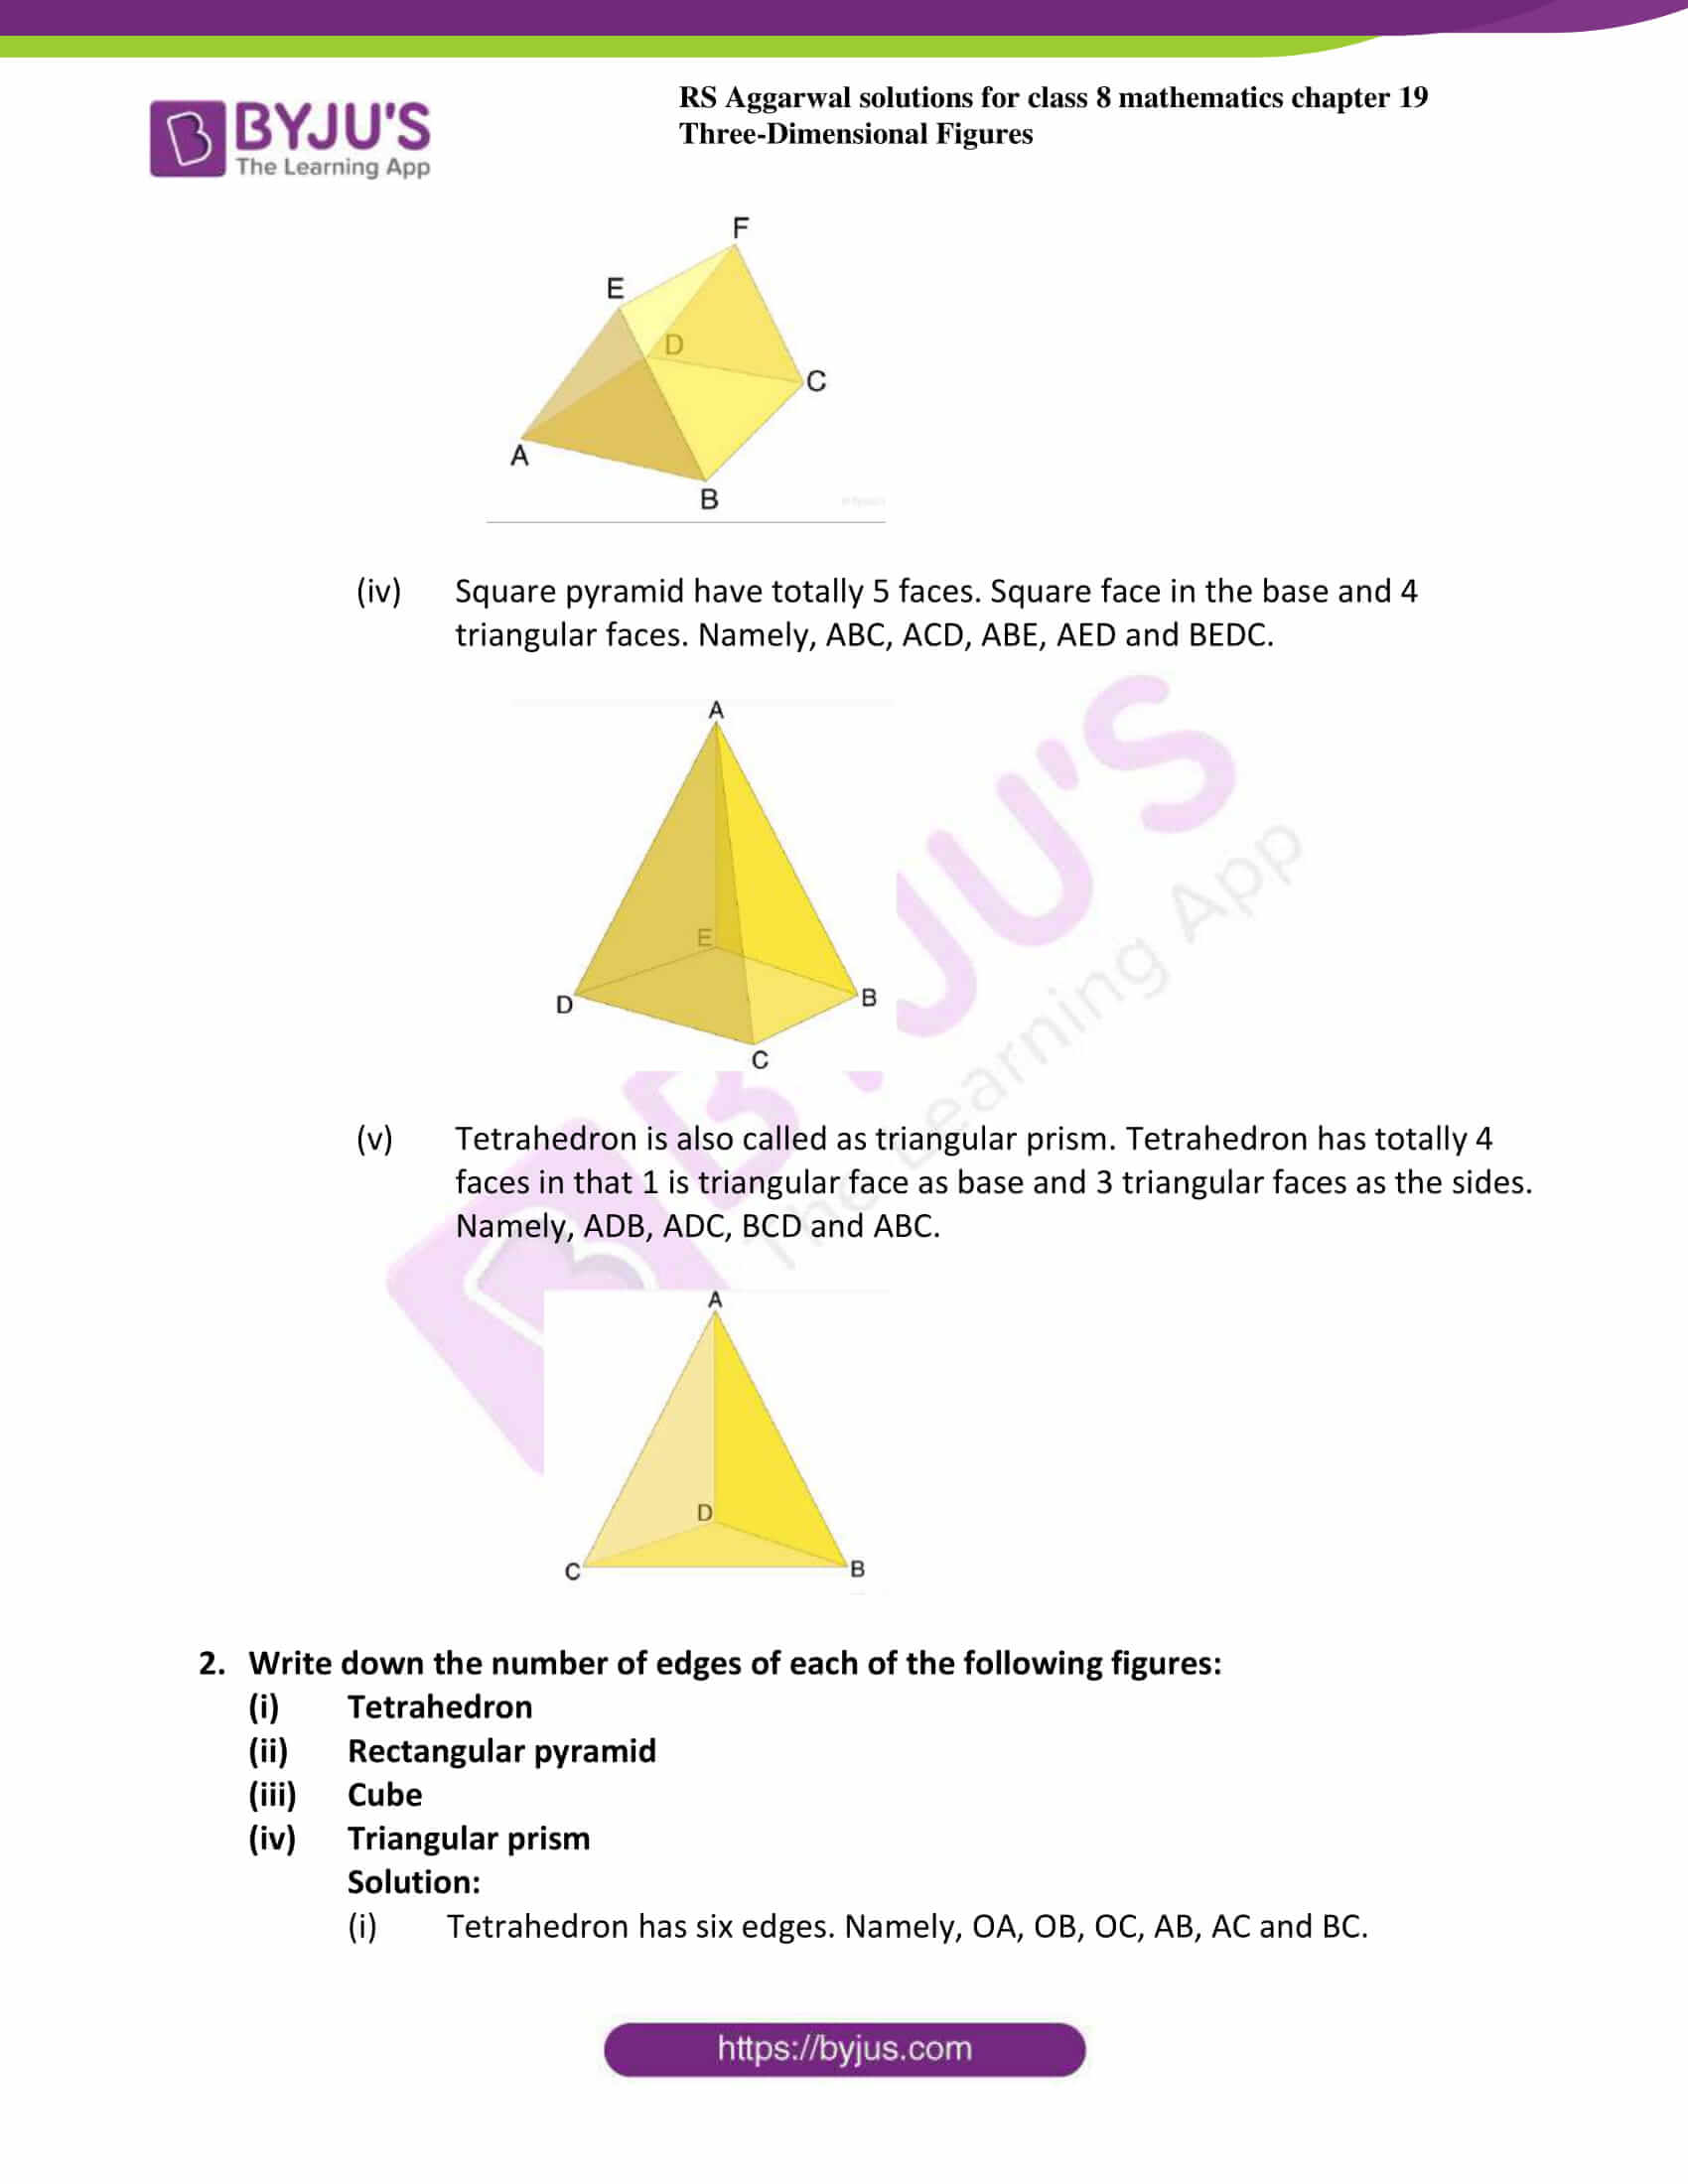 rs aggarwal solution for class 8 maths chapter 19 ex a 2